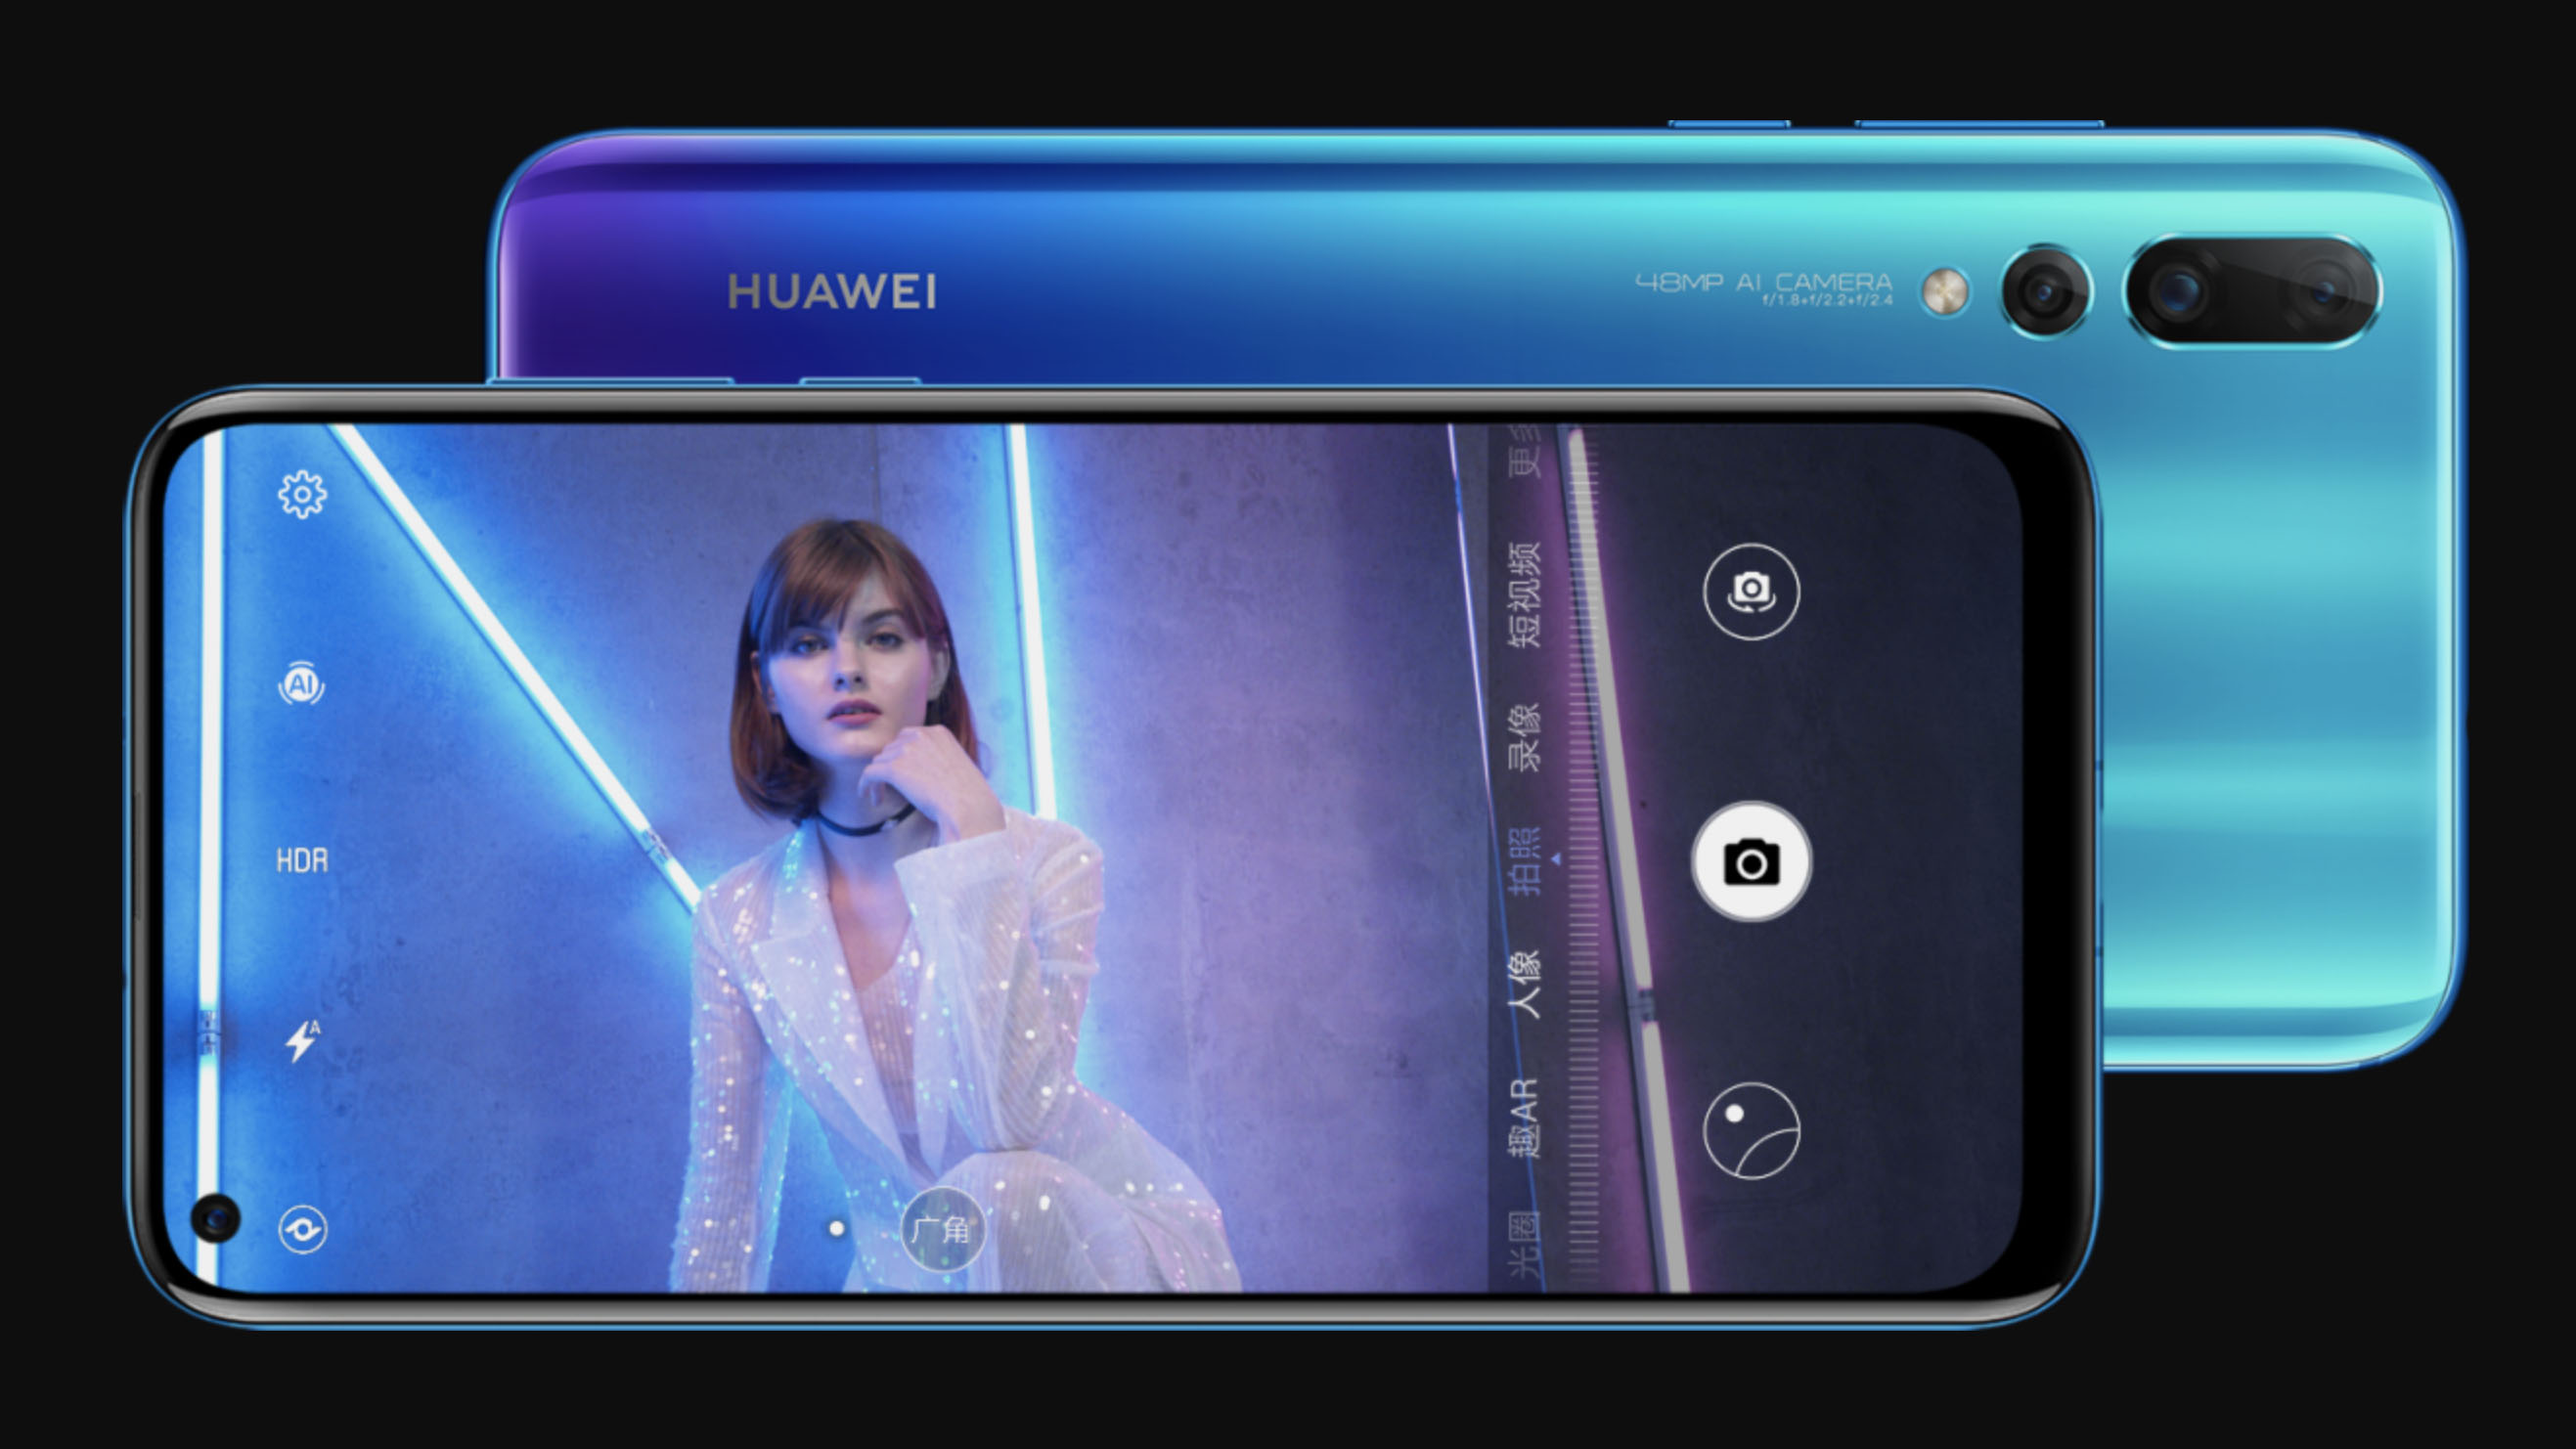 The Huawei Nova 4 is a camera phone with a 48MP monster lens and hole punch display